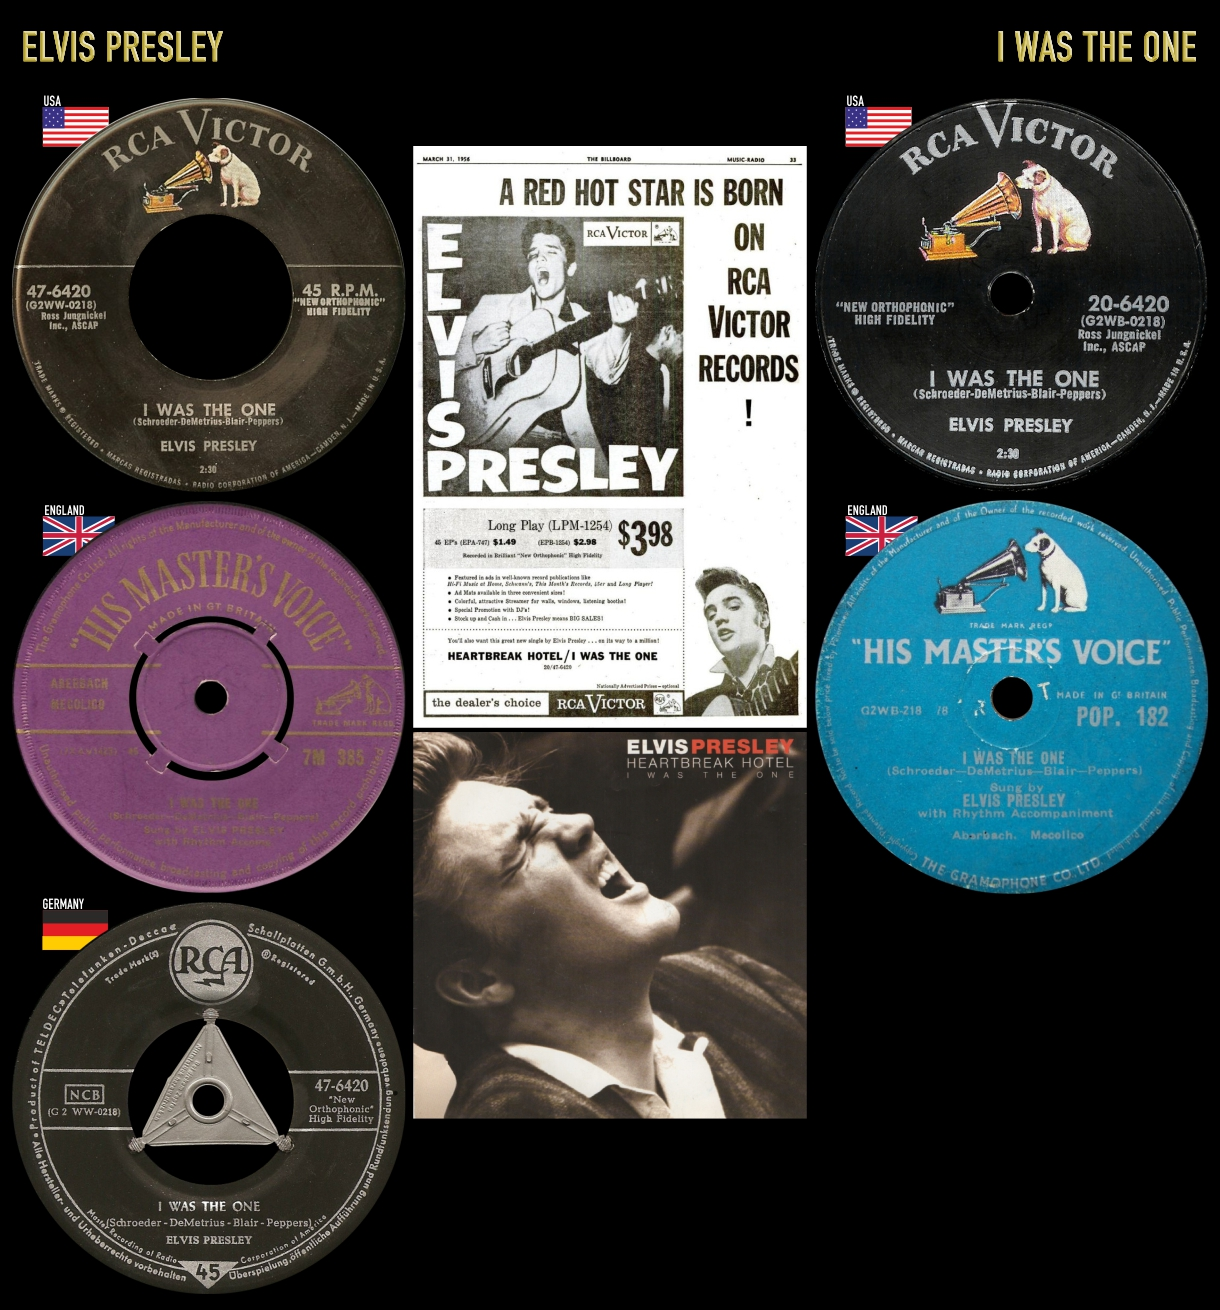 560310_Elvis-Presley_I-Was-The-One